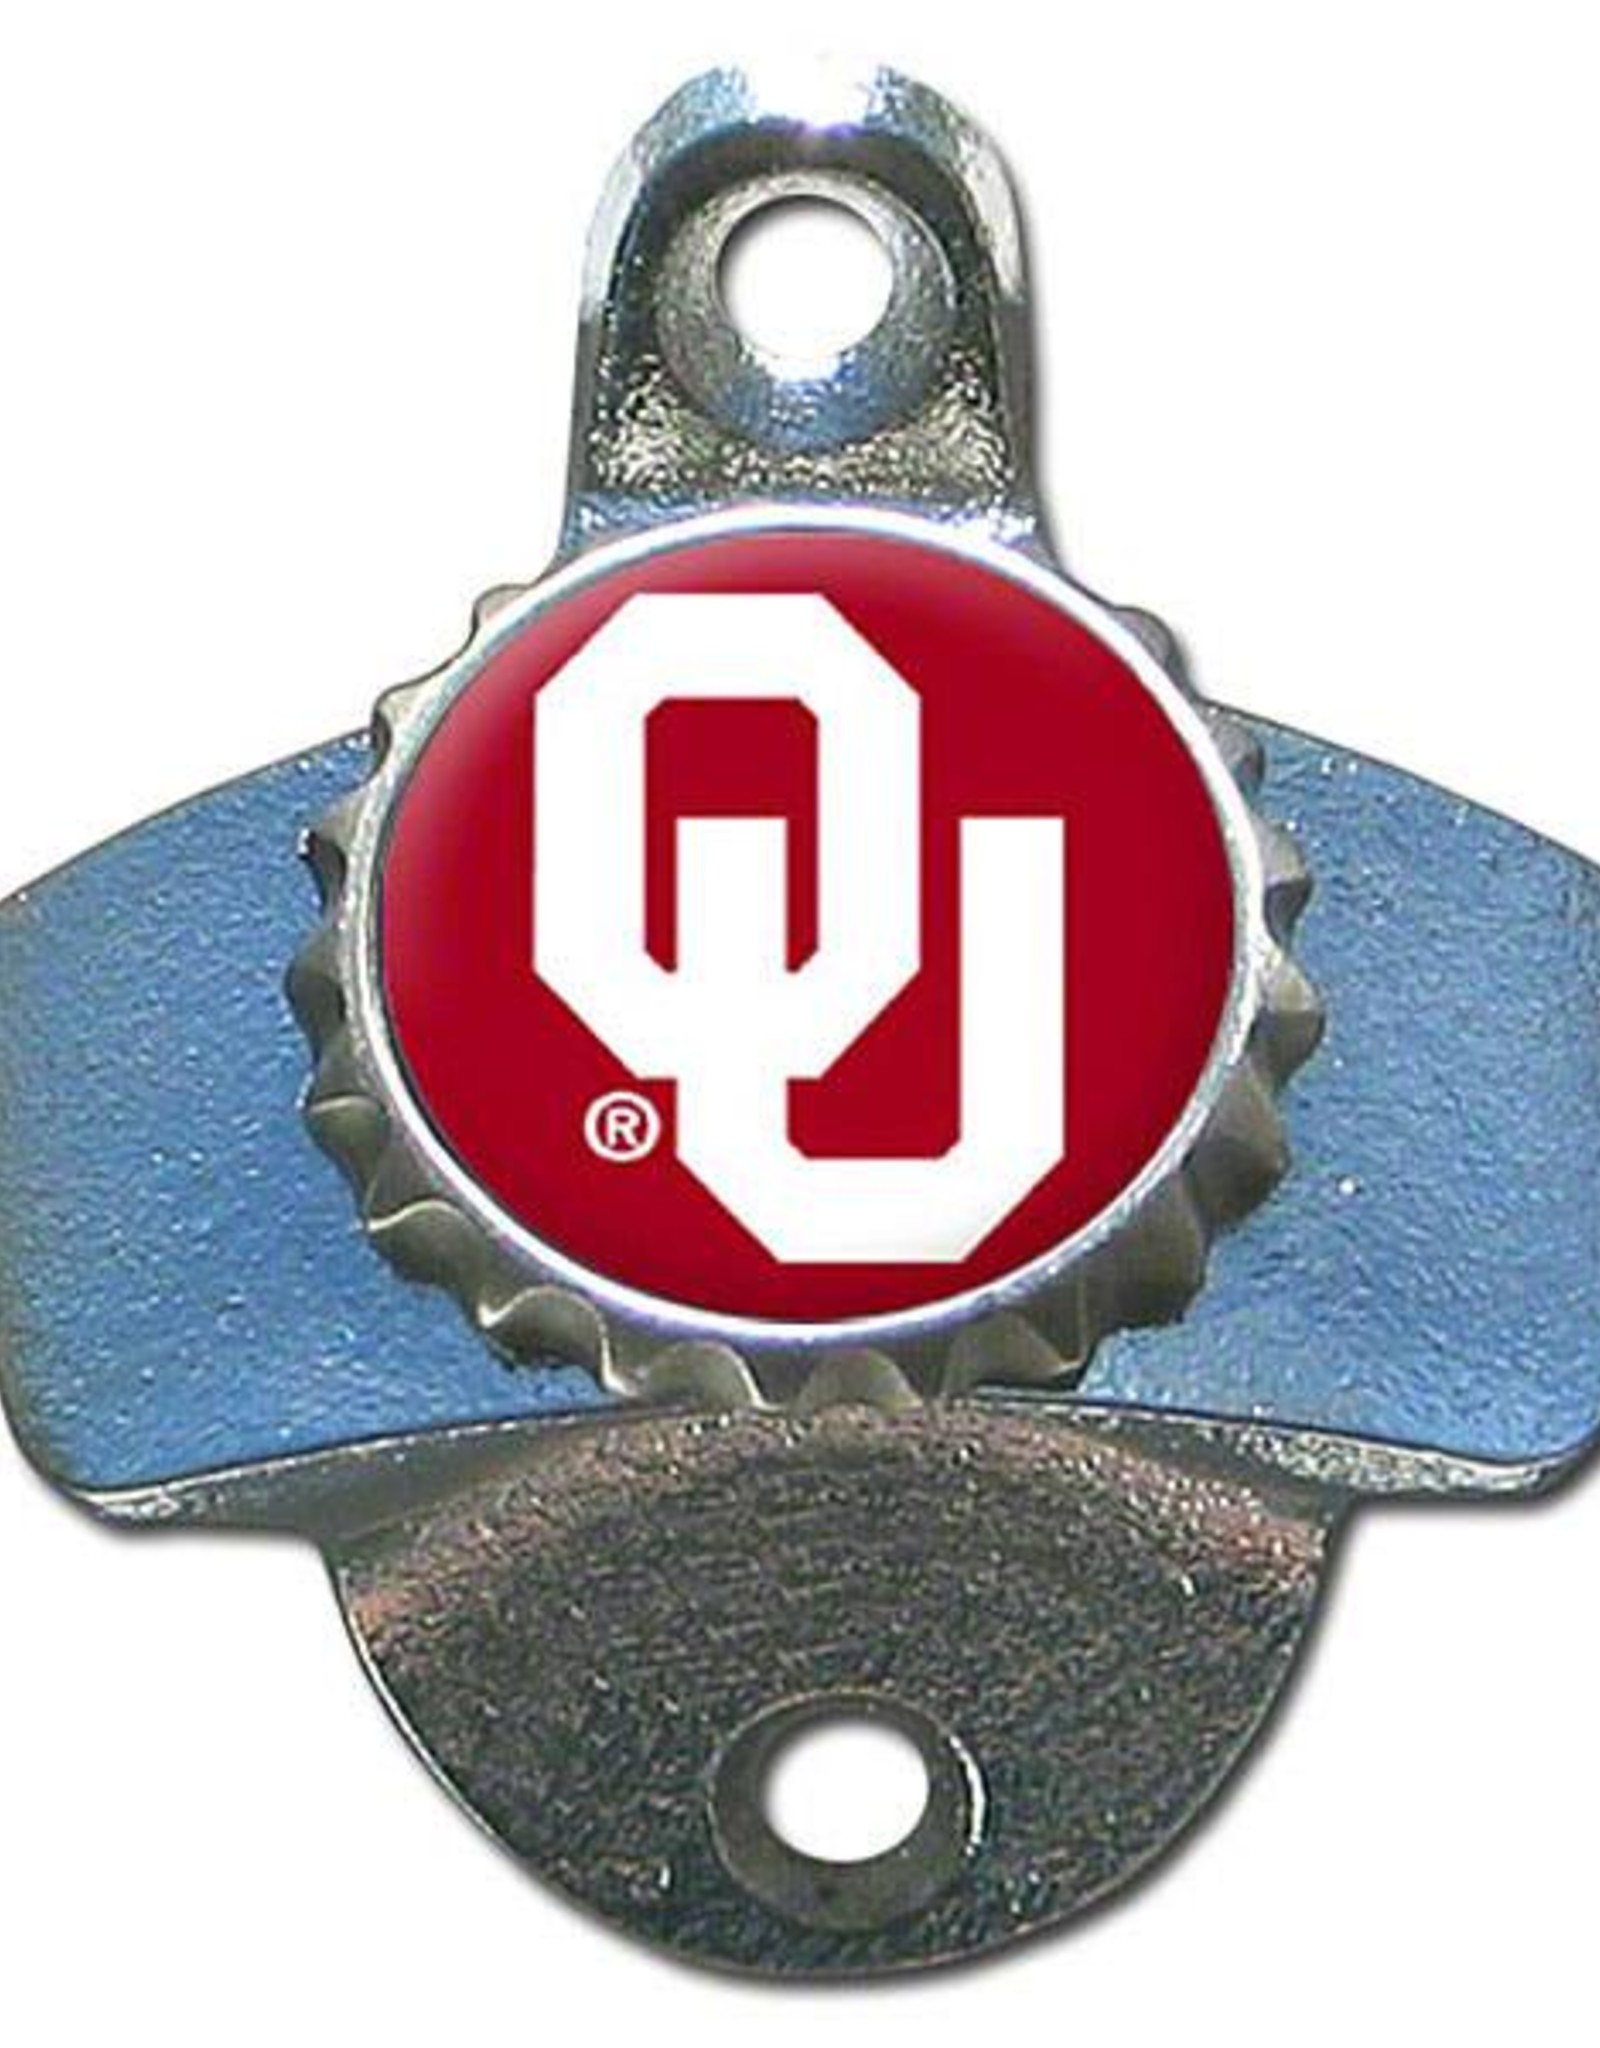 Siskiyou OU Metal Wall Mounted Bottle Opener